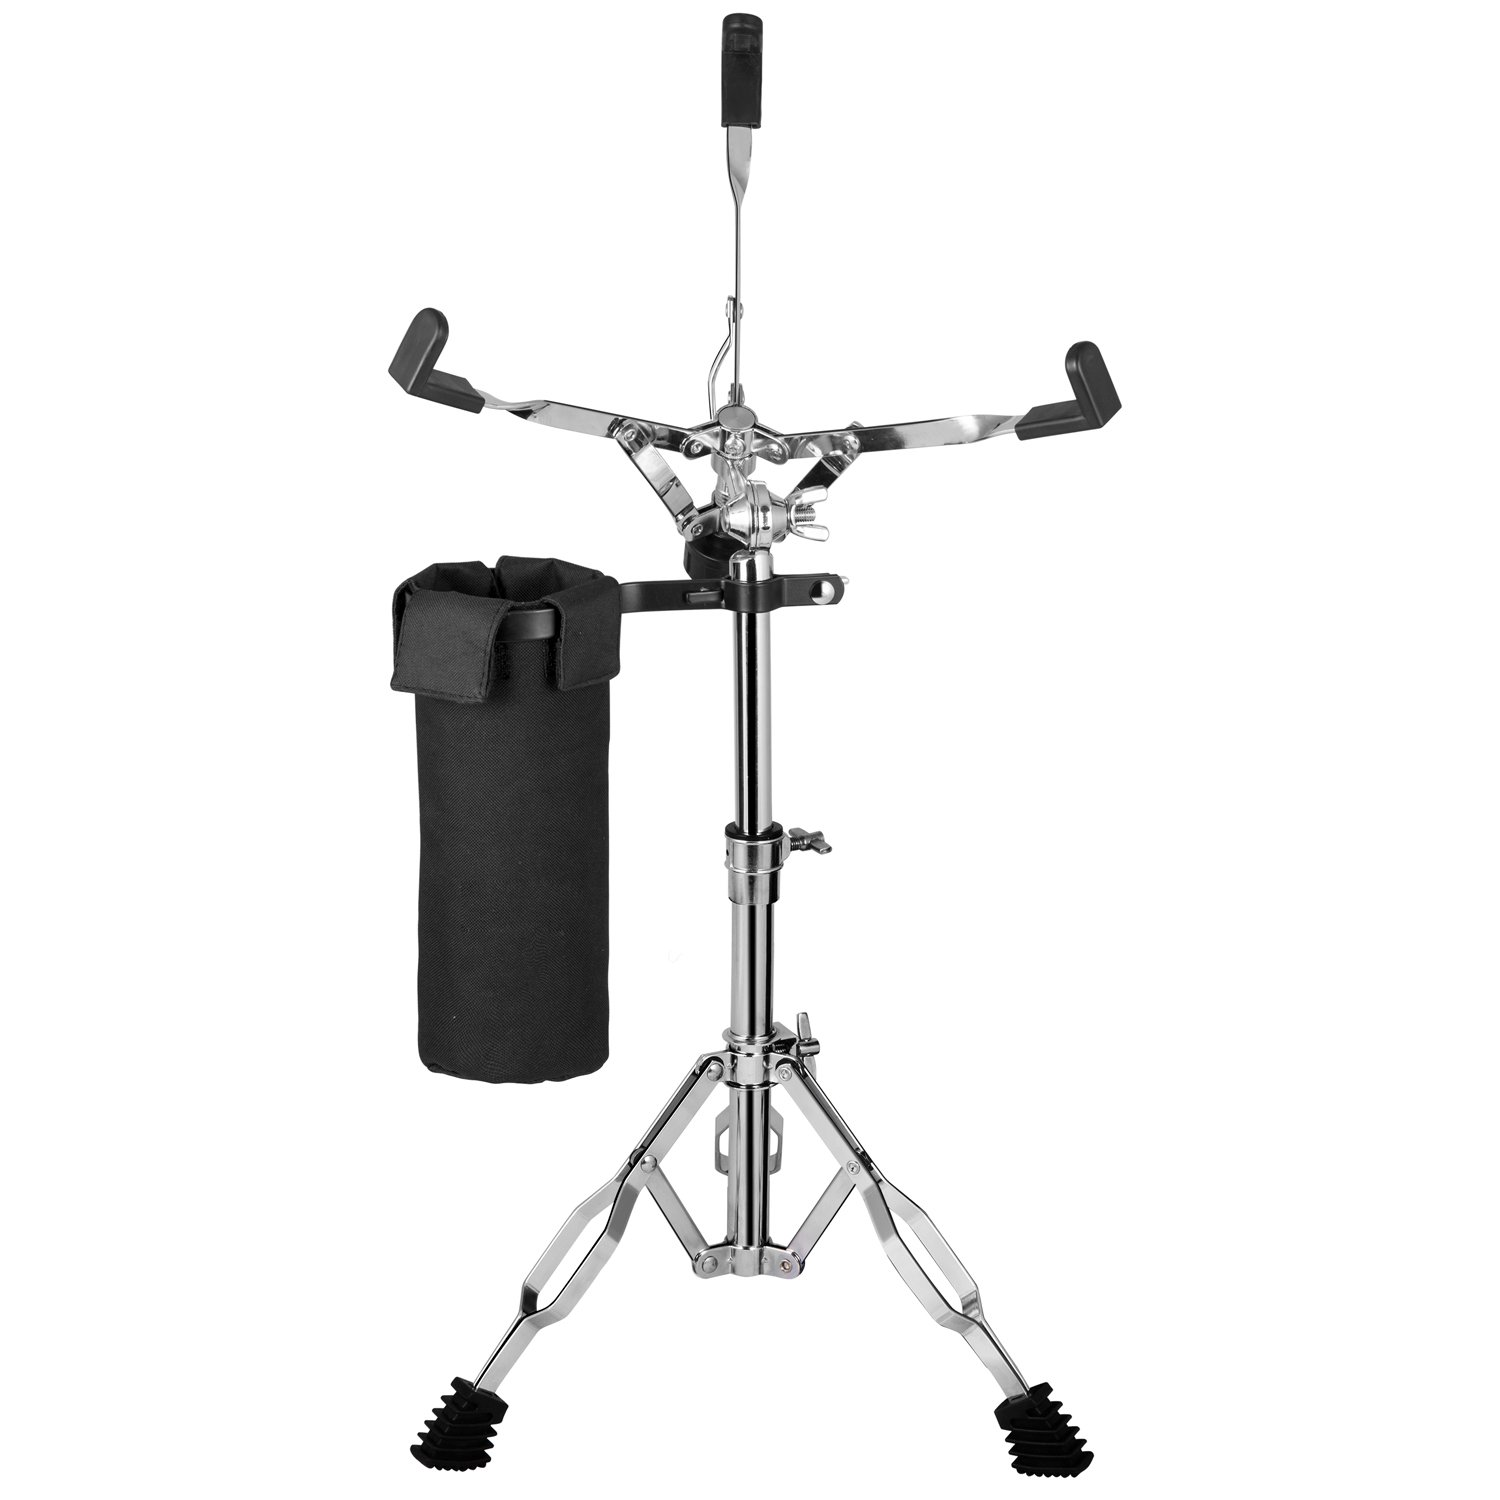 Luvay Snare Stand, Double Braced Lightweight (5lb) - with Stick Holder (Nylon Drumstick Bag) by LUVAY